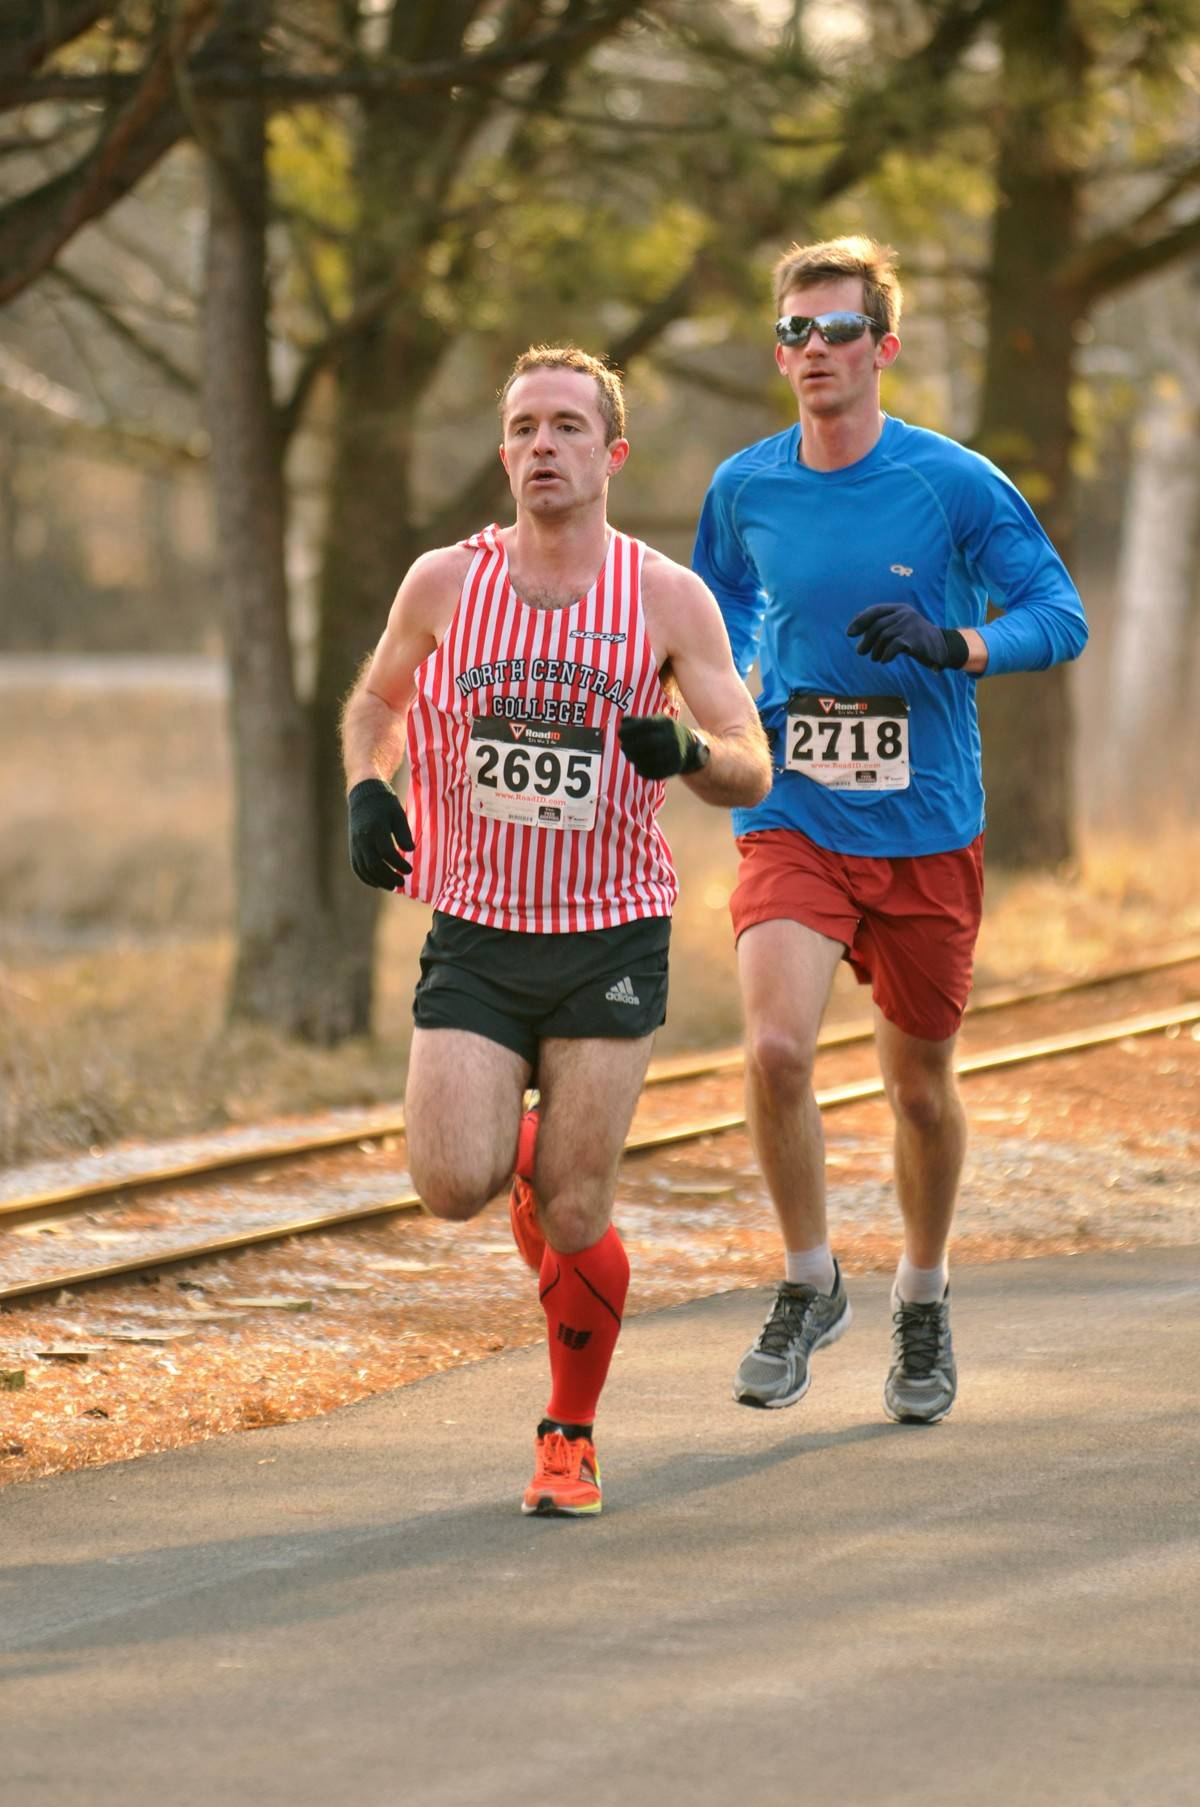 Alex Taylor (bib 2718) was the top finisher in the 2013 5K Spring Gallop, edging Nathan Kennedy (2695) by two seconds to win the overall title.